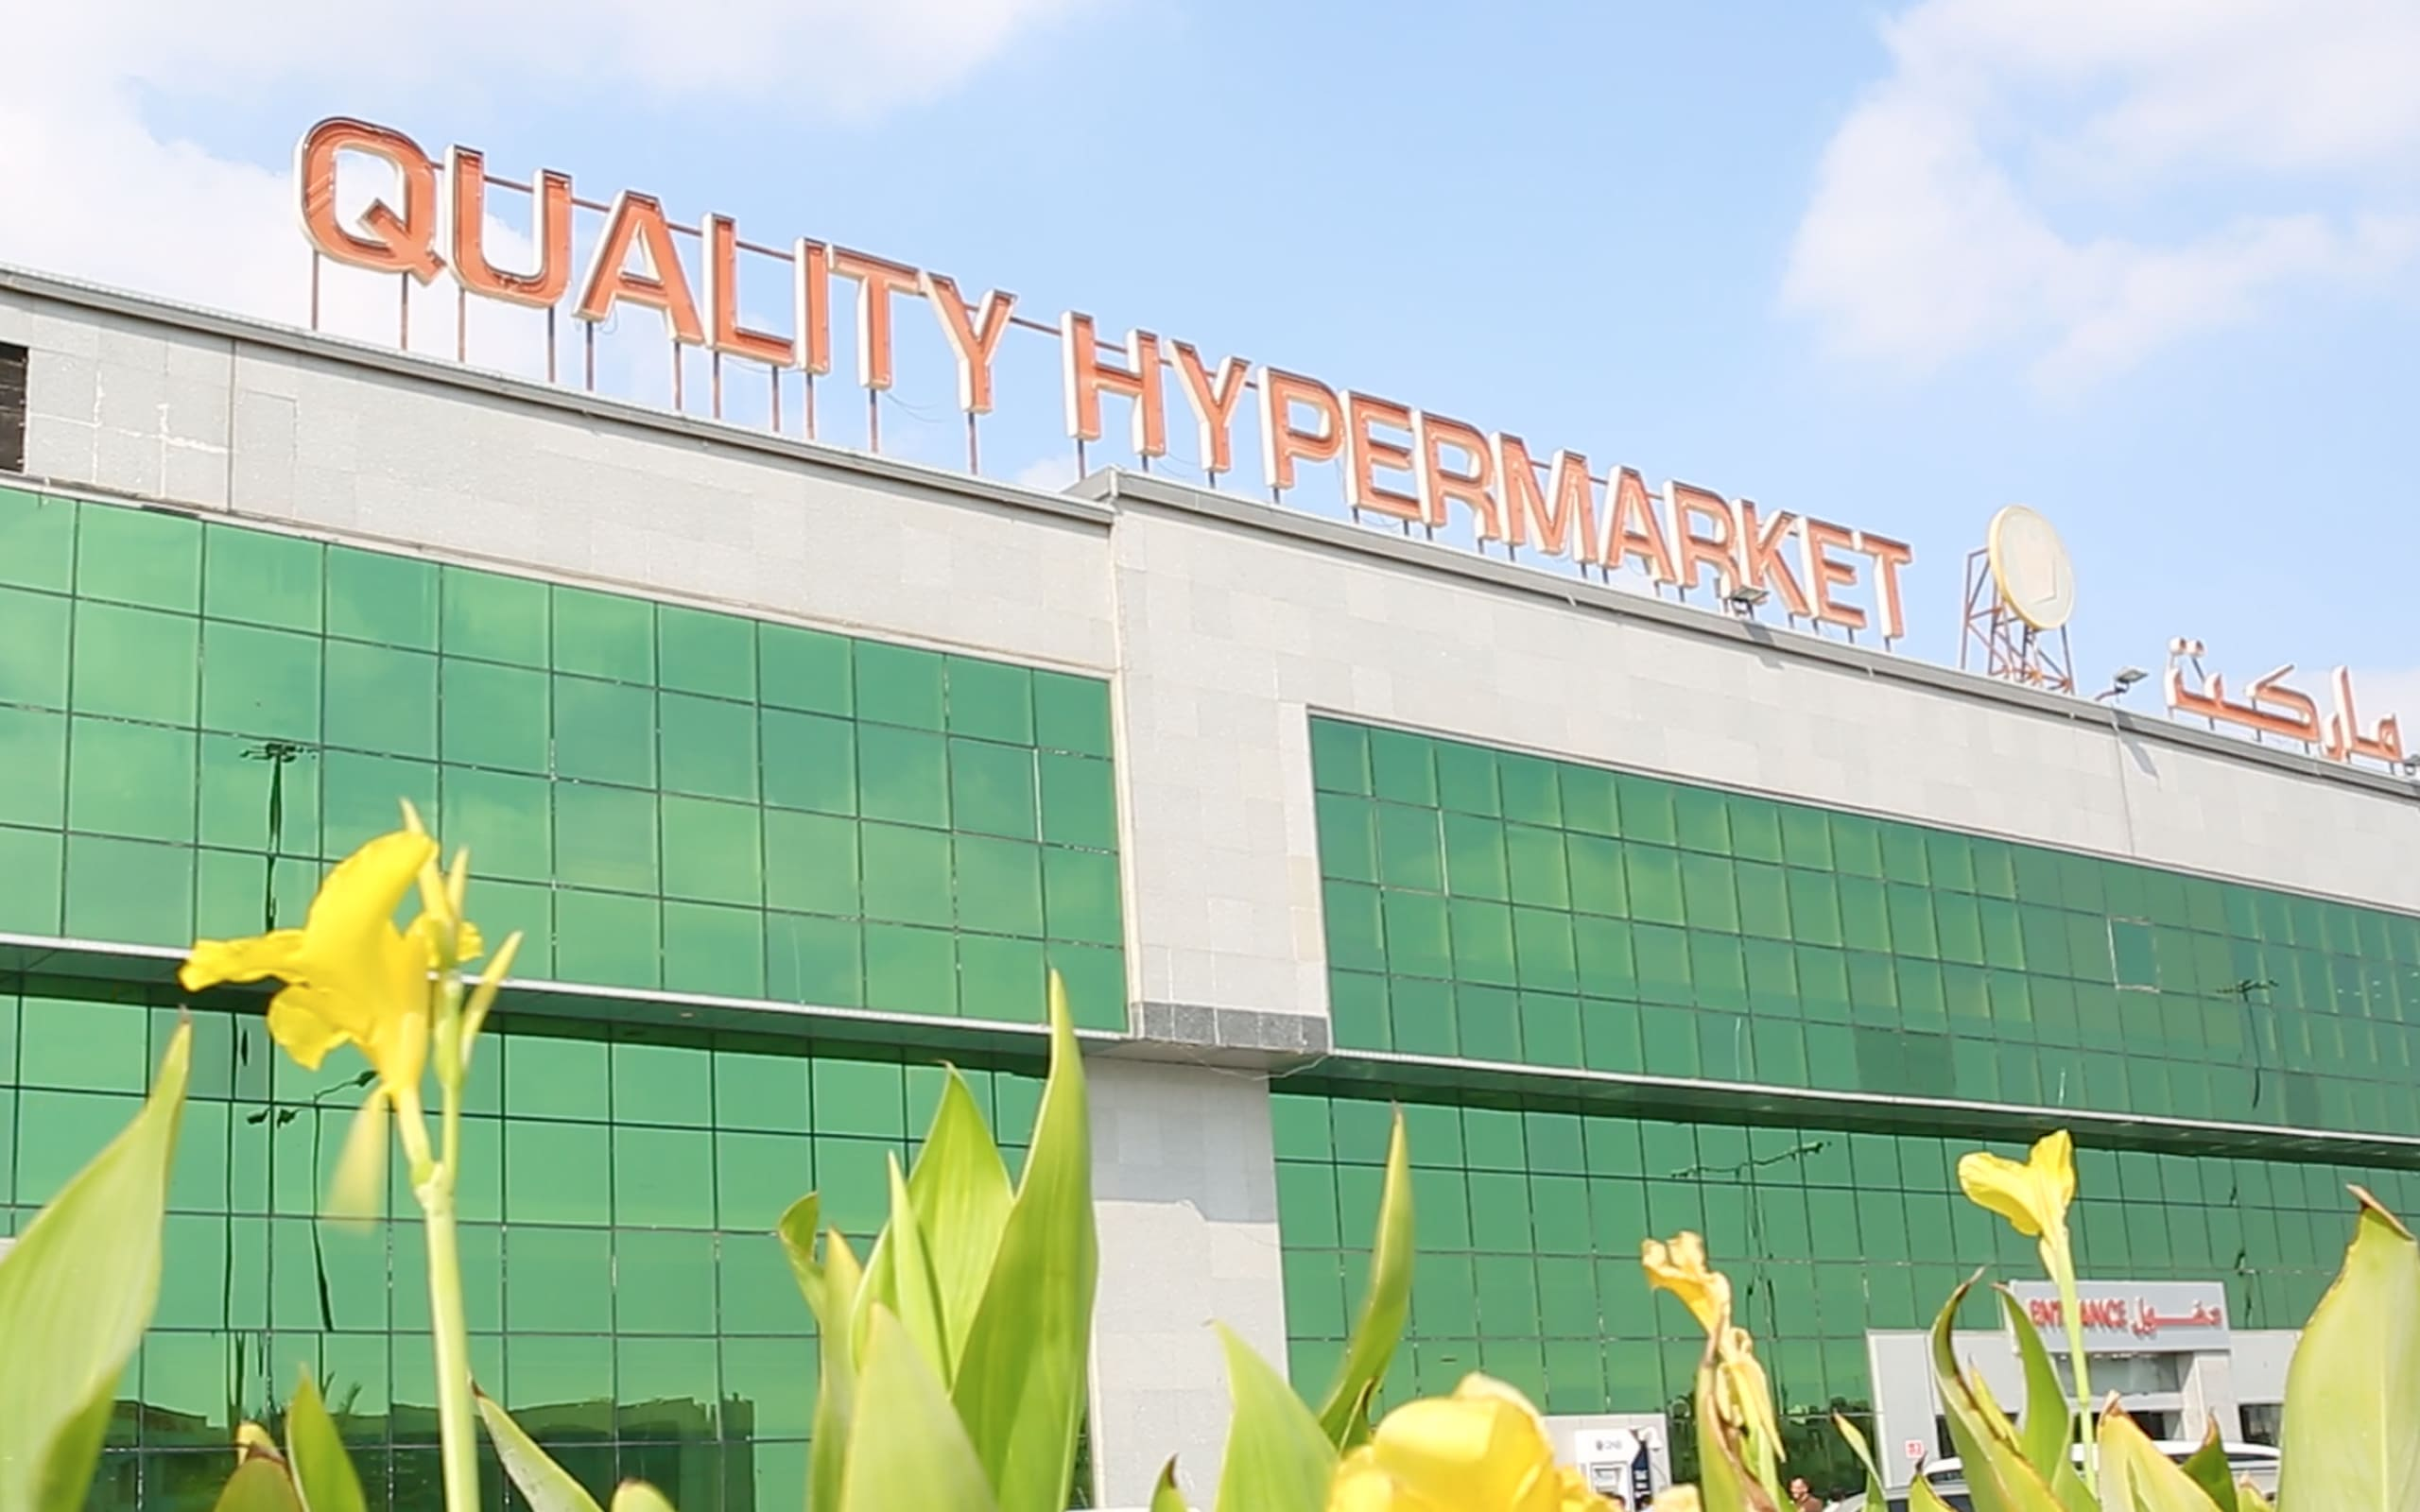 QUALITY HYPER MARKET – COMPLETED